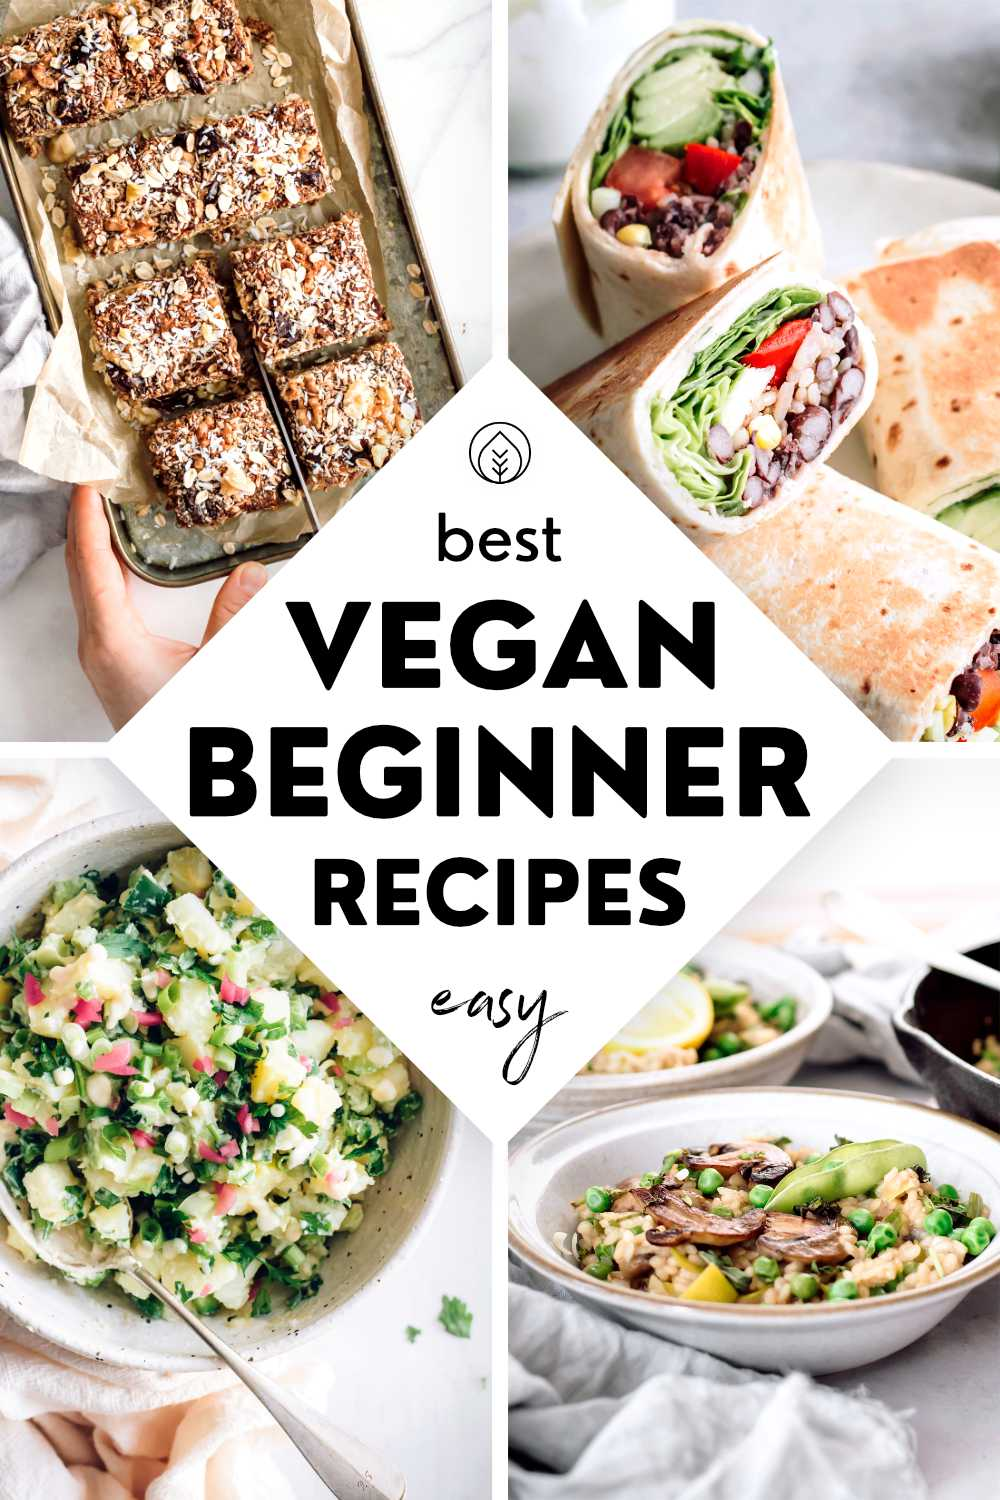 Vegan Beginner Recipes Pin